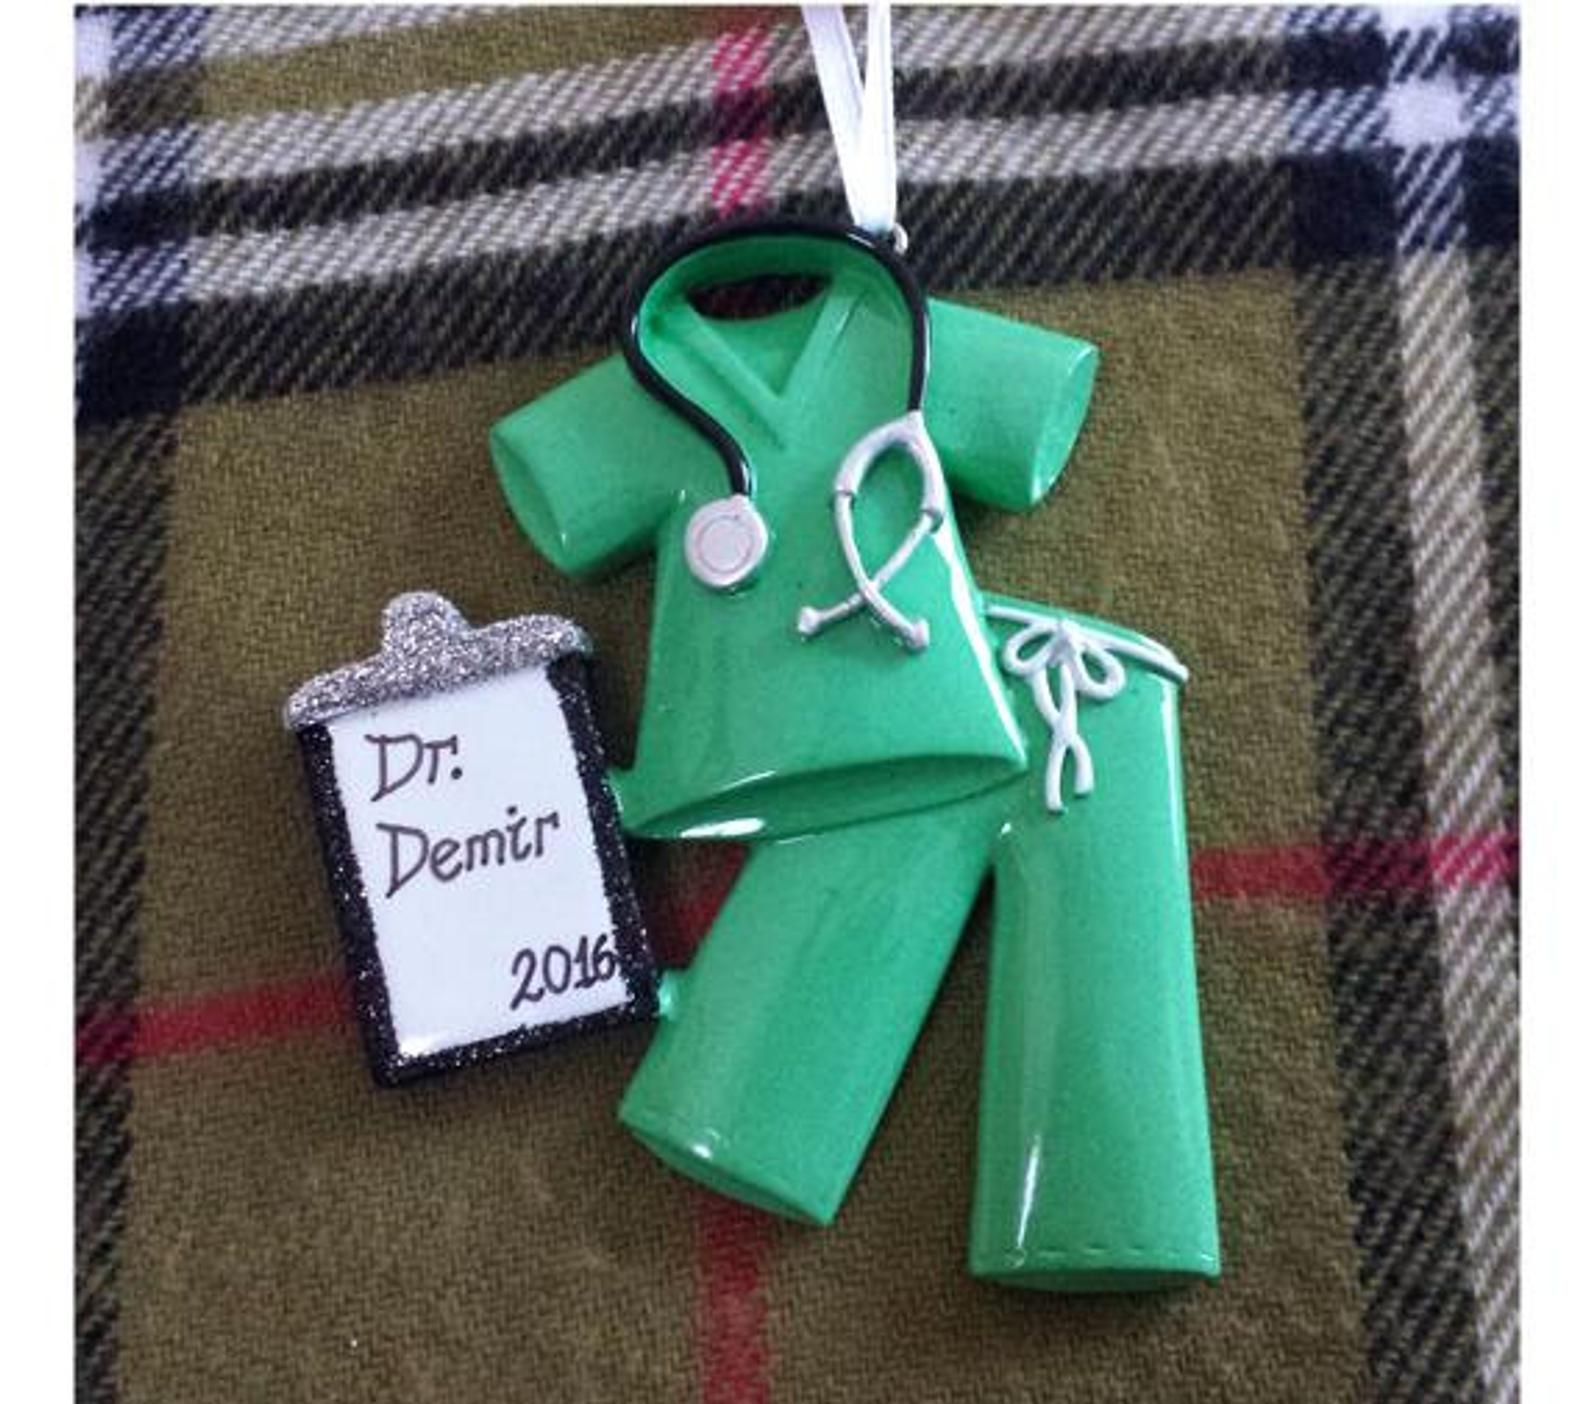 Personalized Christmas Ornament Teal Scrubs Gift for Doctor, Nurse/Medical School Grad/Retirement Gift, RN, MD & More - Scrubs Ornament